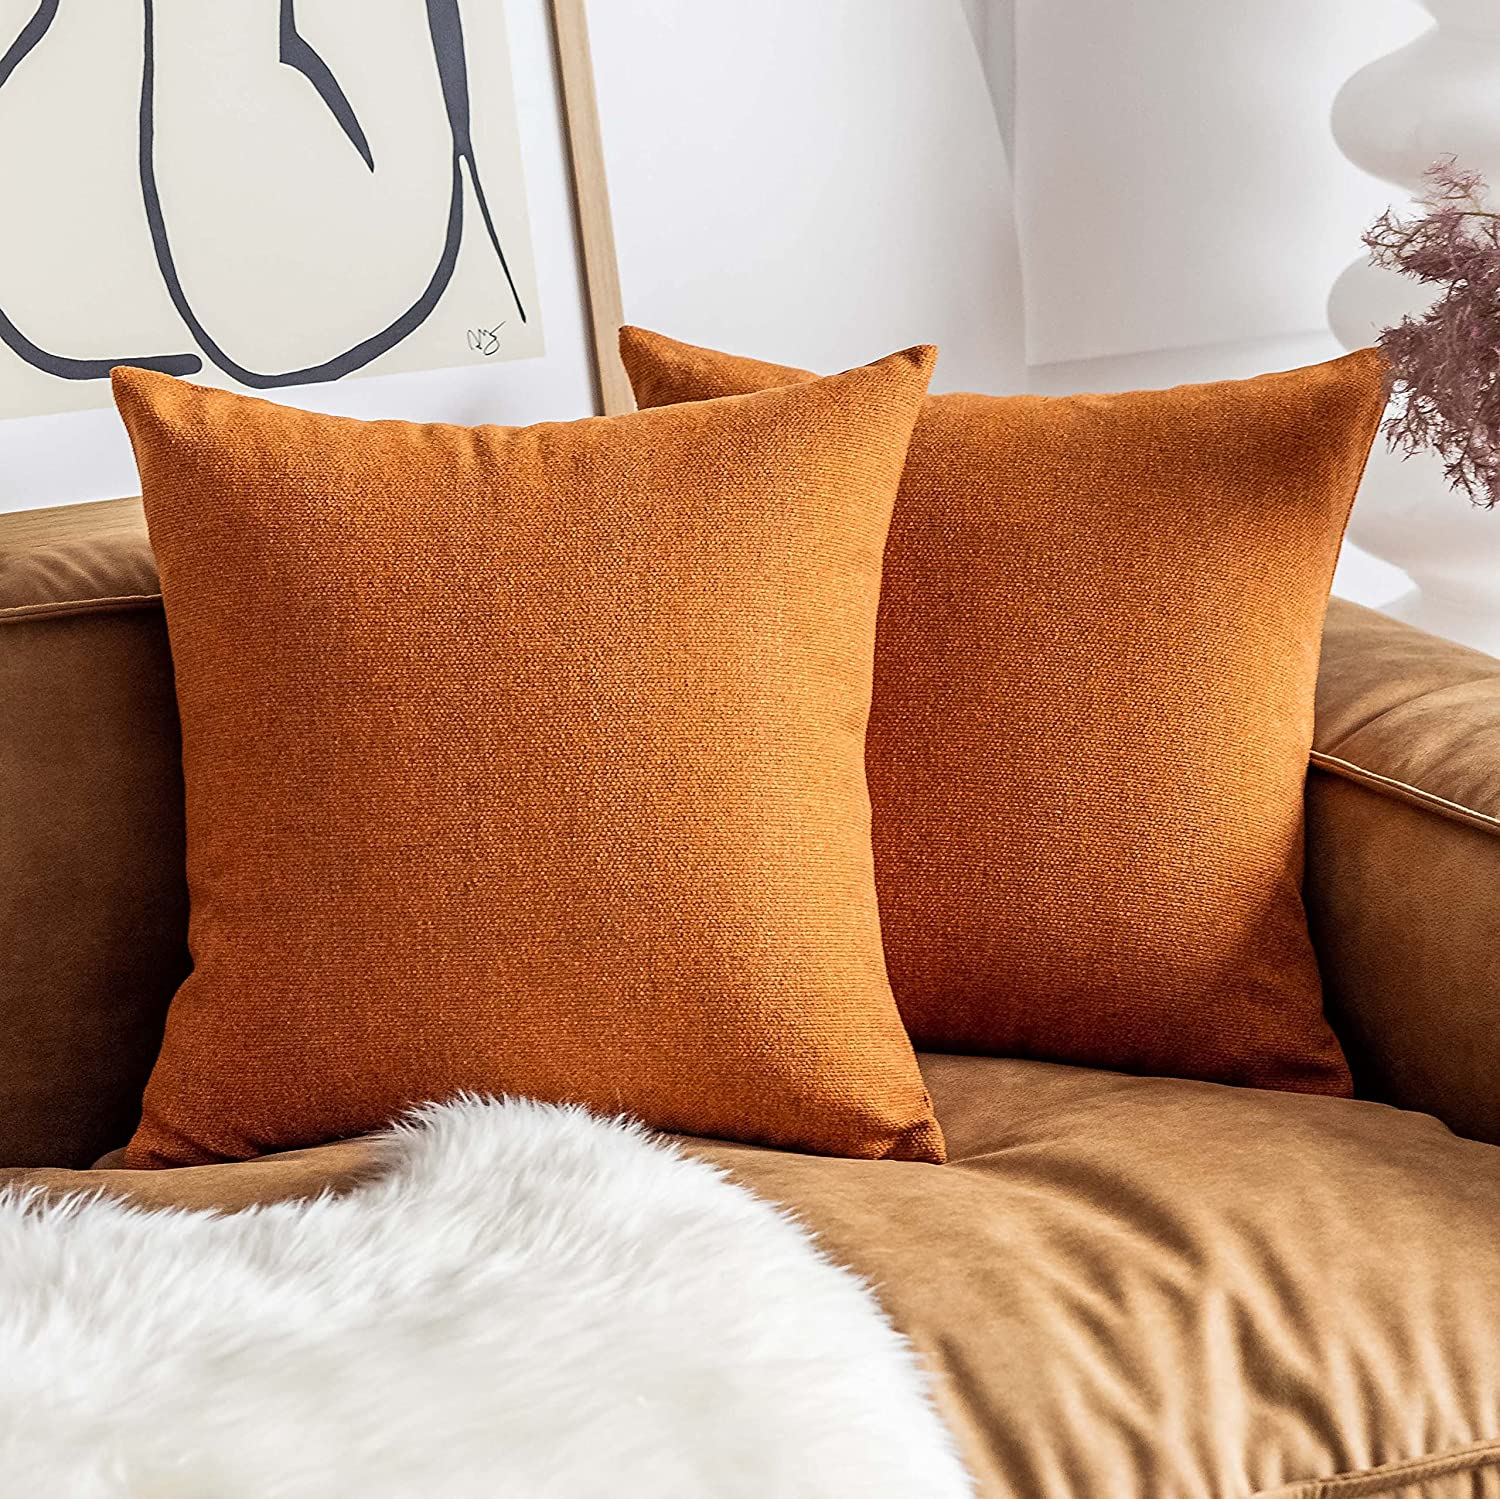 Home Brilliant Fall Pillow Covers 18x18 2 Pi Selling rankings Burnt Set Orange Max 77% OFF of